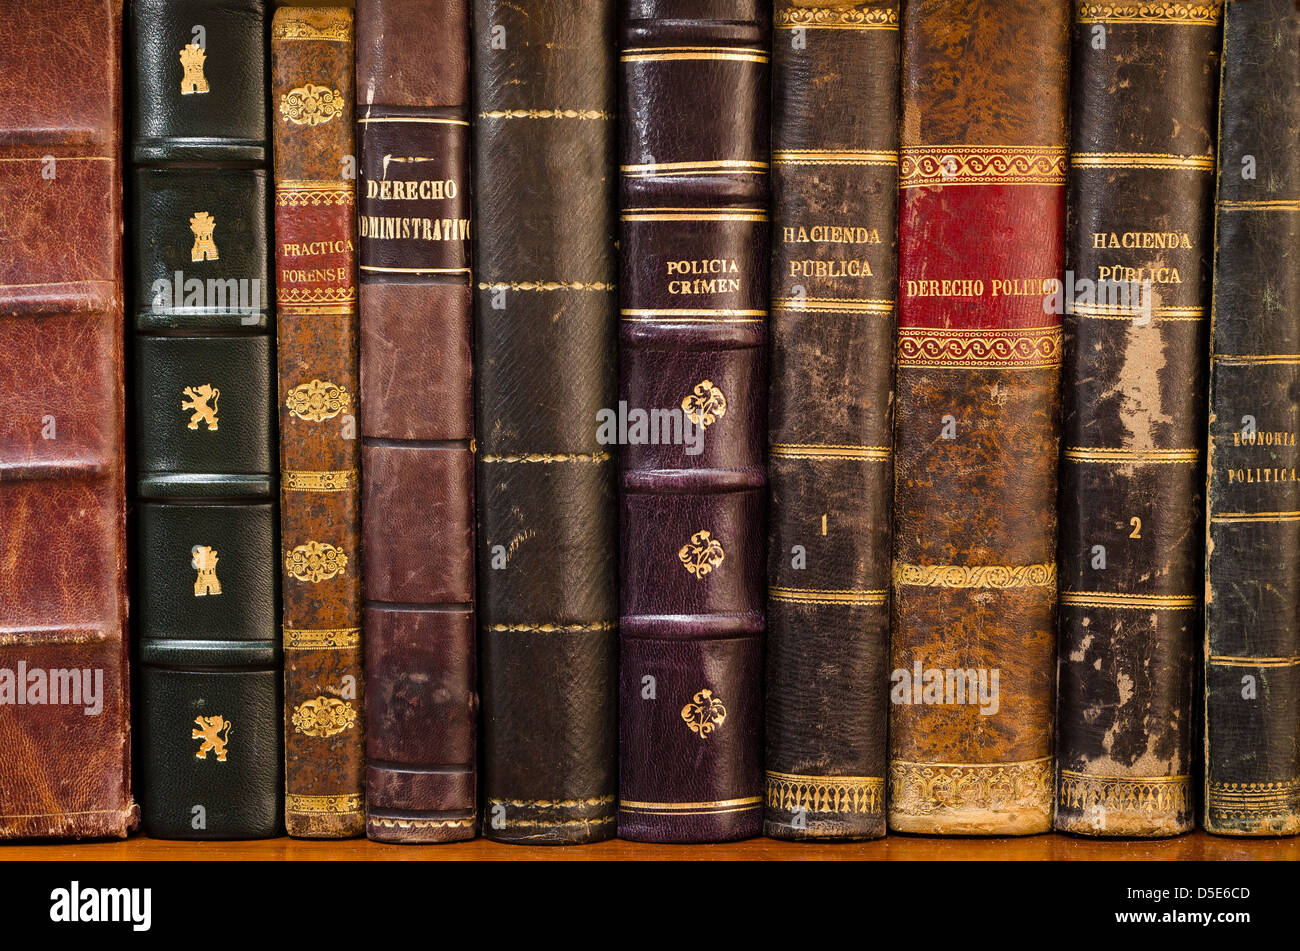 Bookshelf with old books in Spanish legal and economic issues - Stock Image